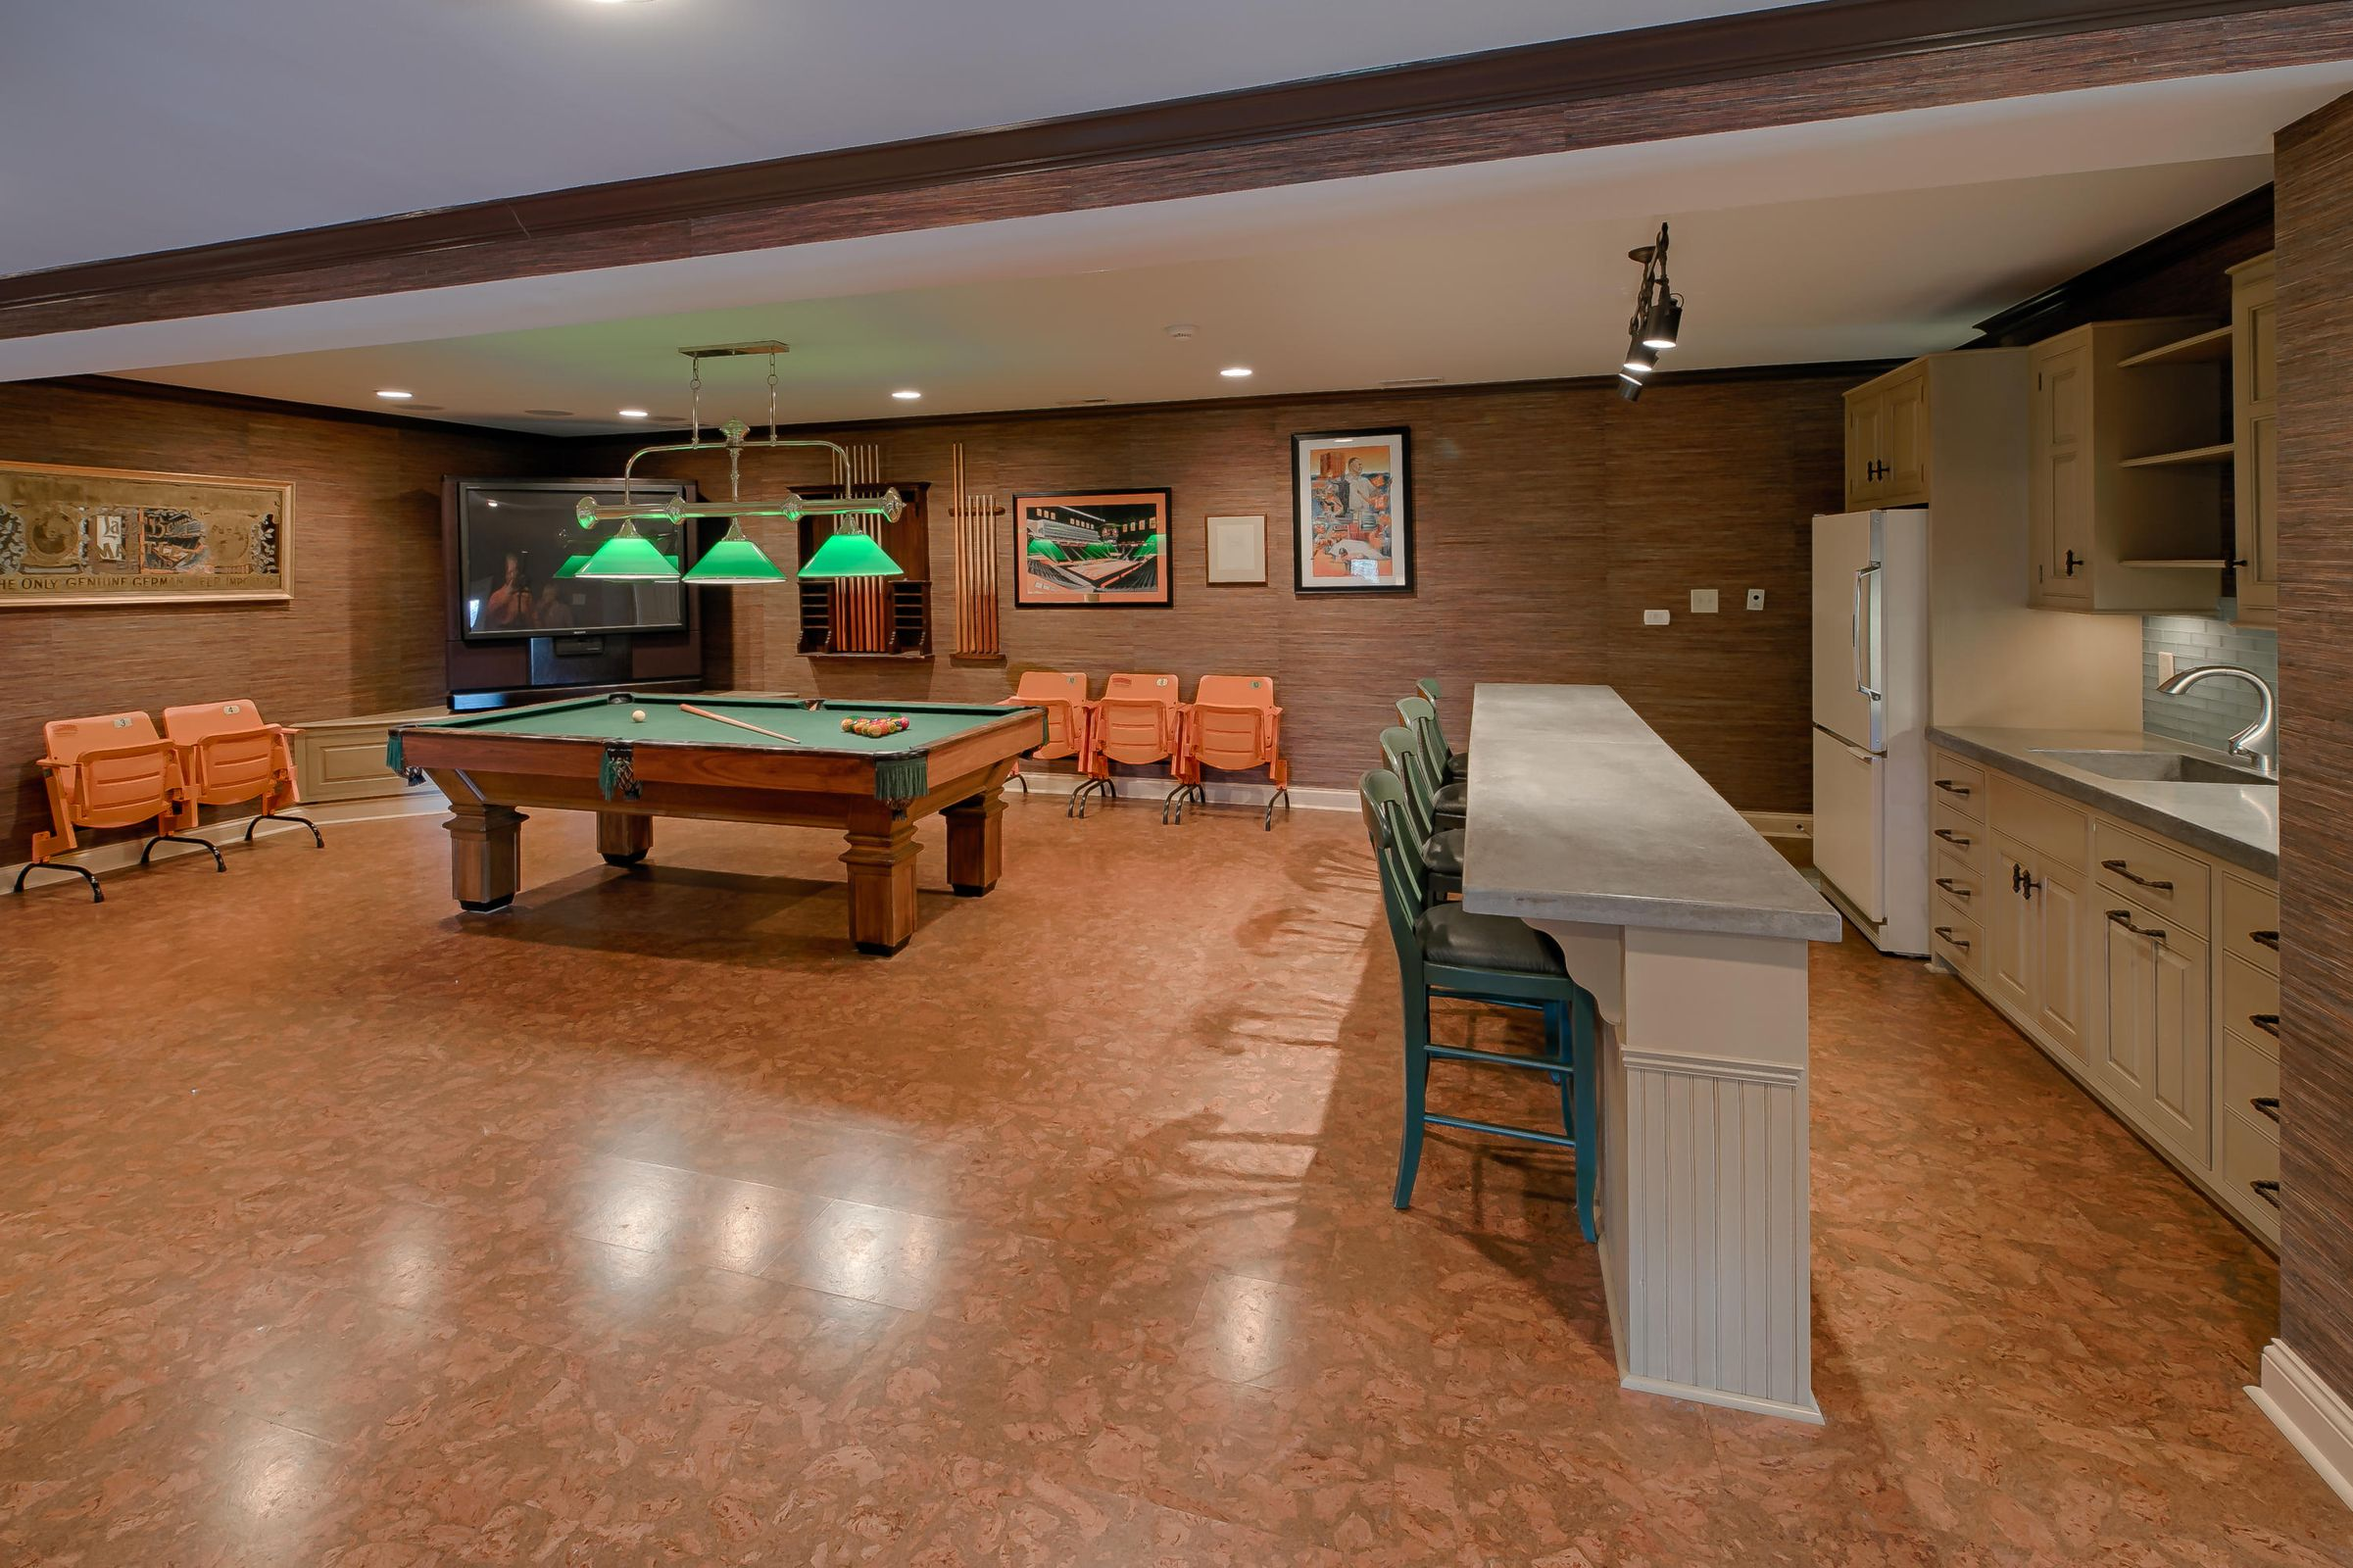 Billiards Room with Kitchenette